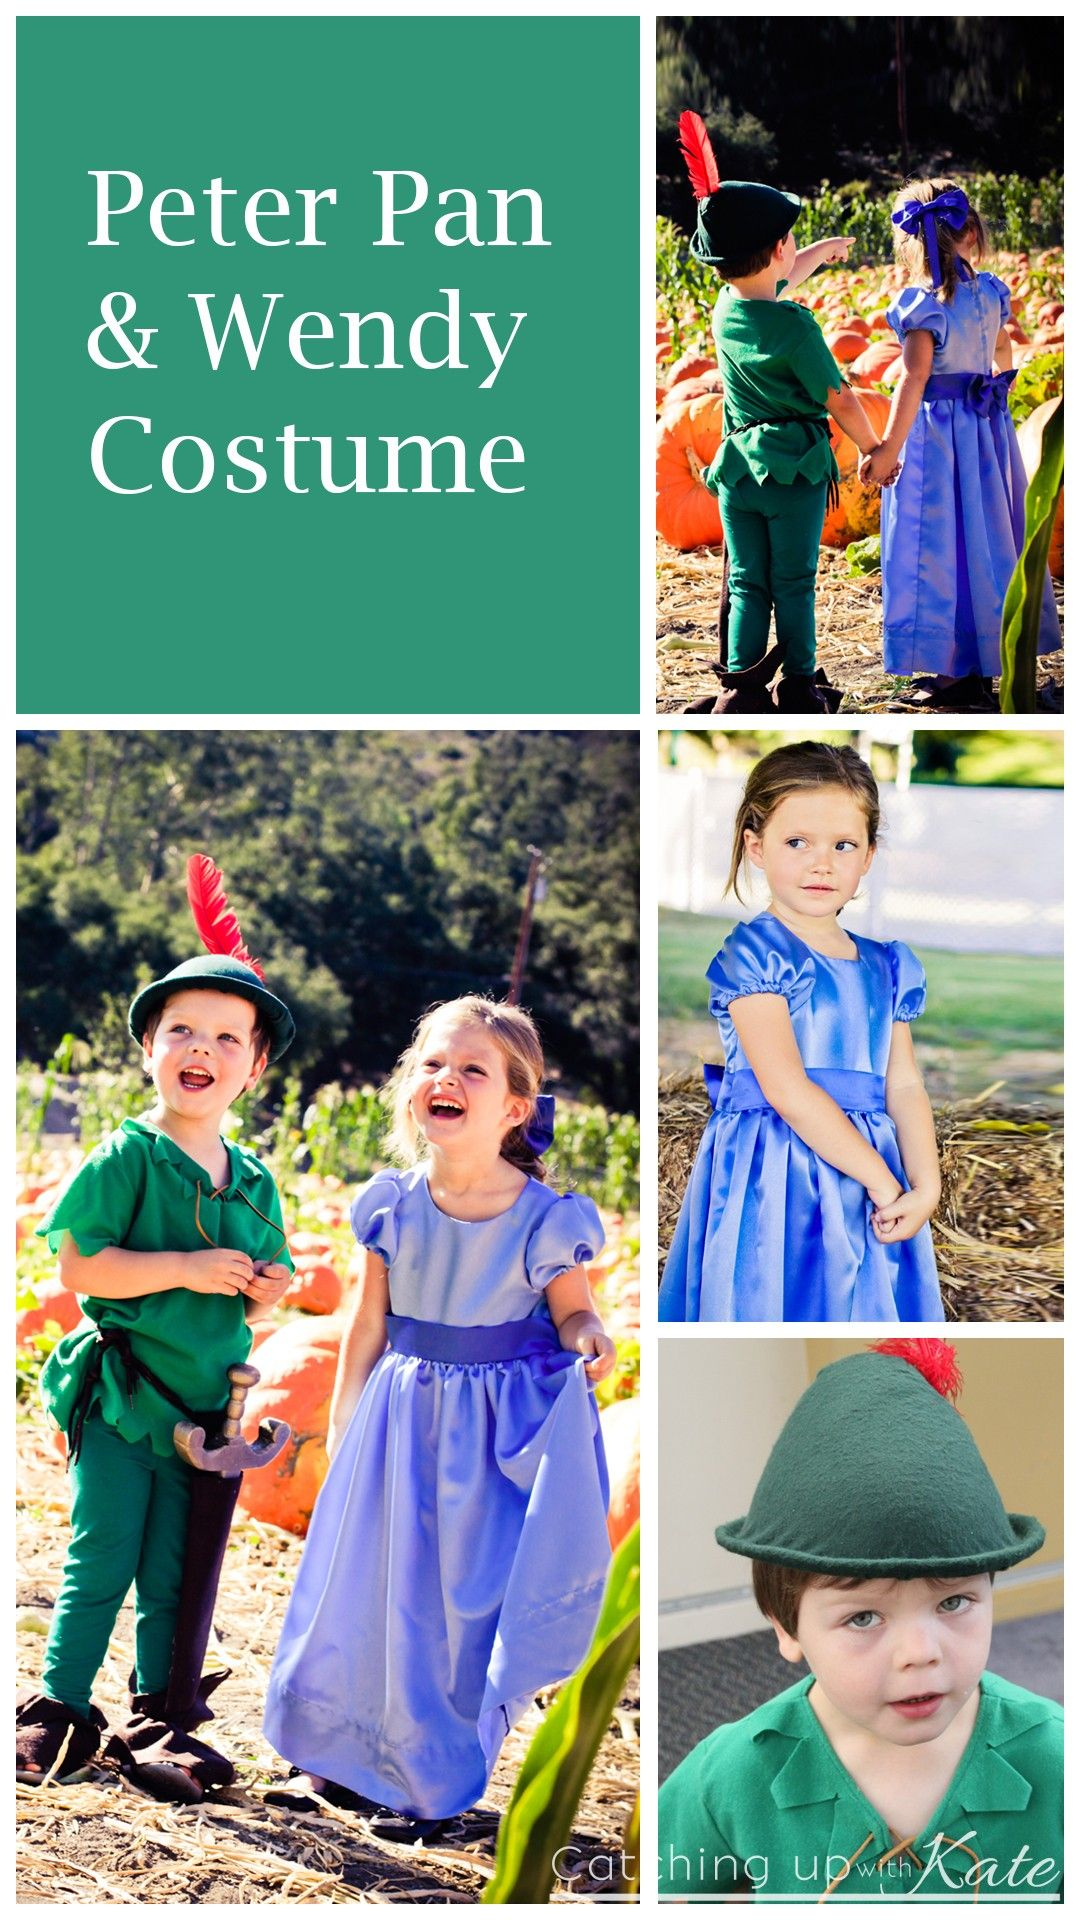 Twin Costume Ideas - Peter Pan and Wendy | Scary halloween ...